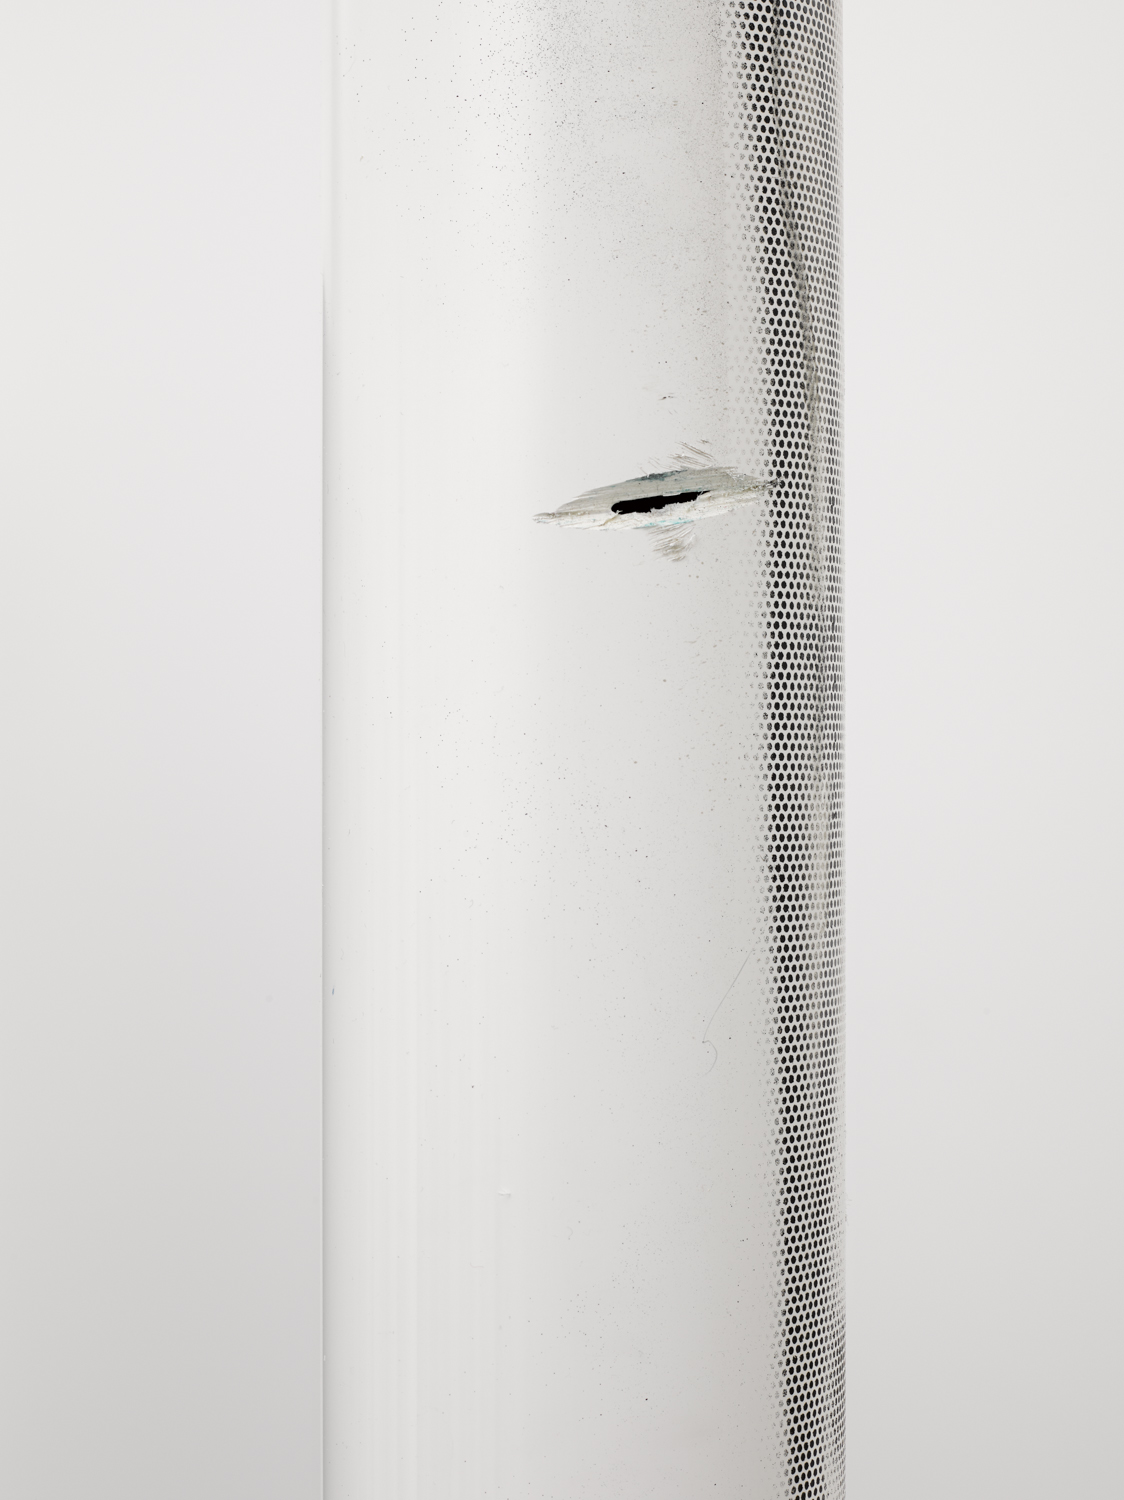 PVC personal visualisation criteria    (detail)   2014   PVC pipe, ink jet on perforated vinyl and enamel   169 x 4 x 4 inches